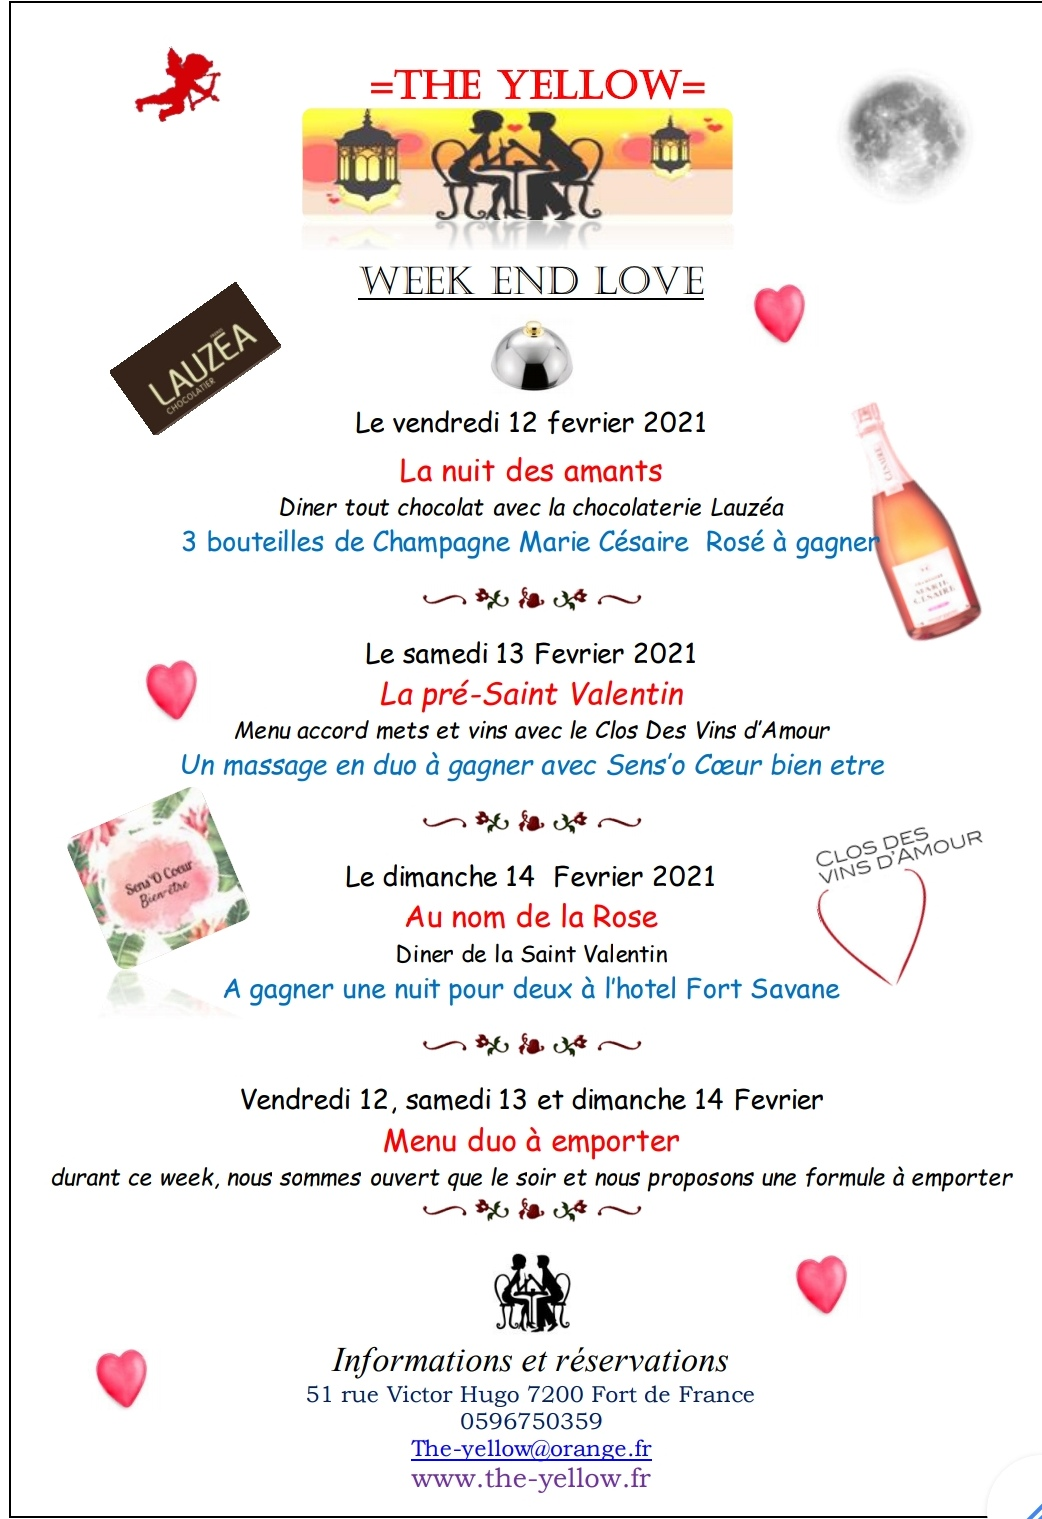 Week-end de la Saint Valentin